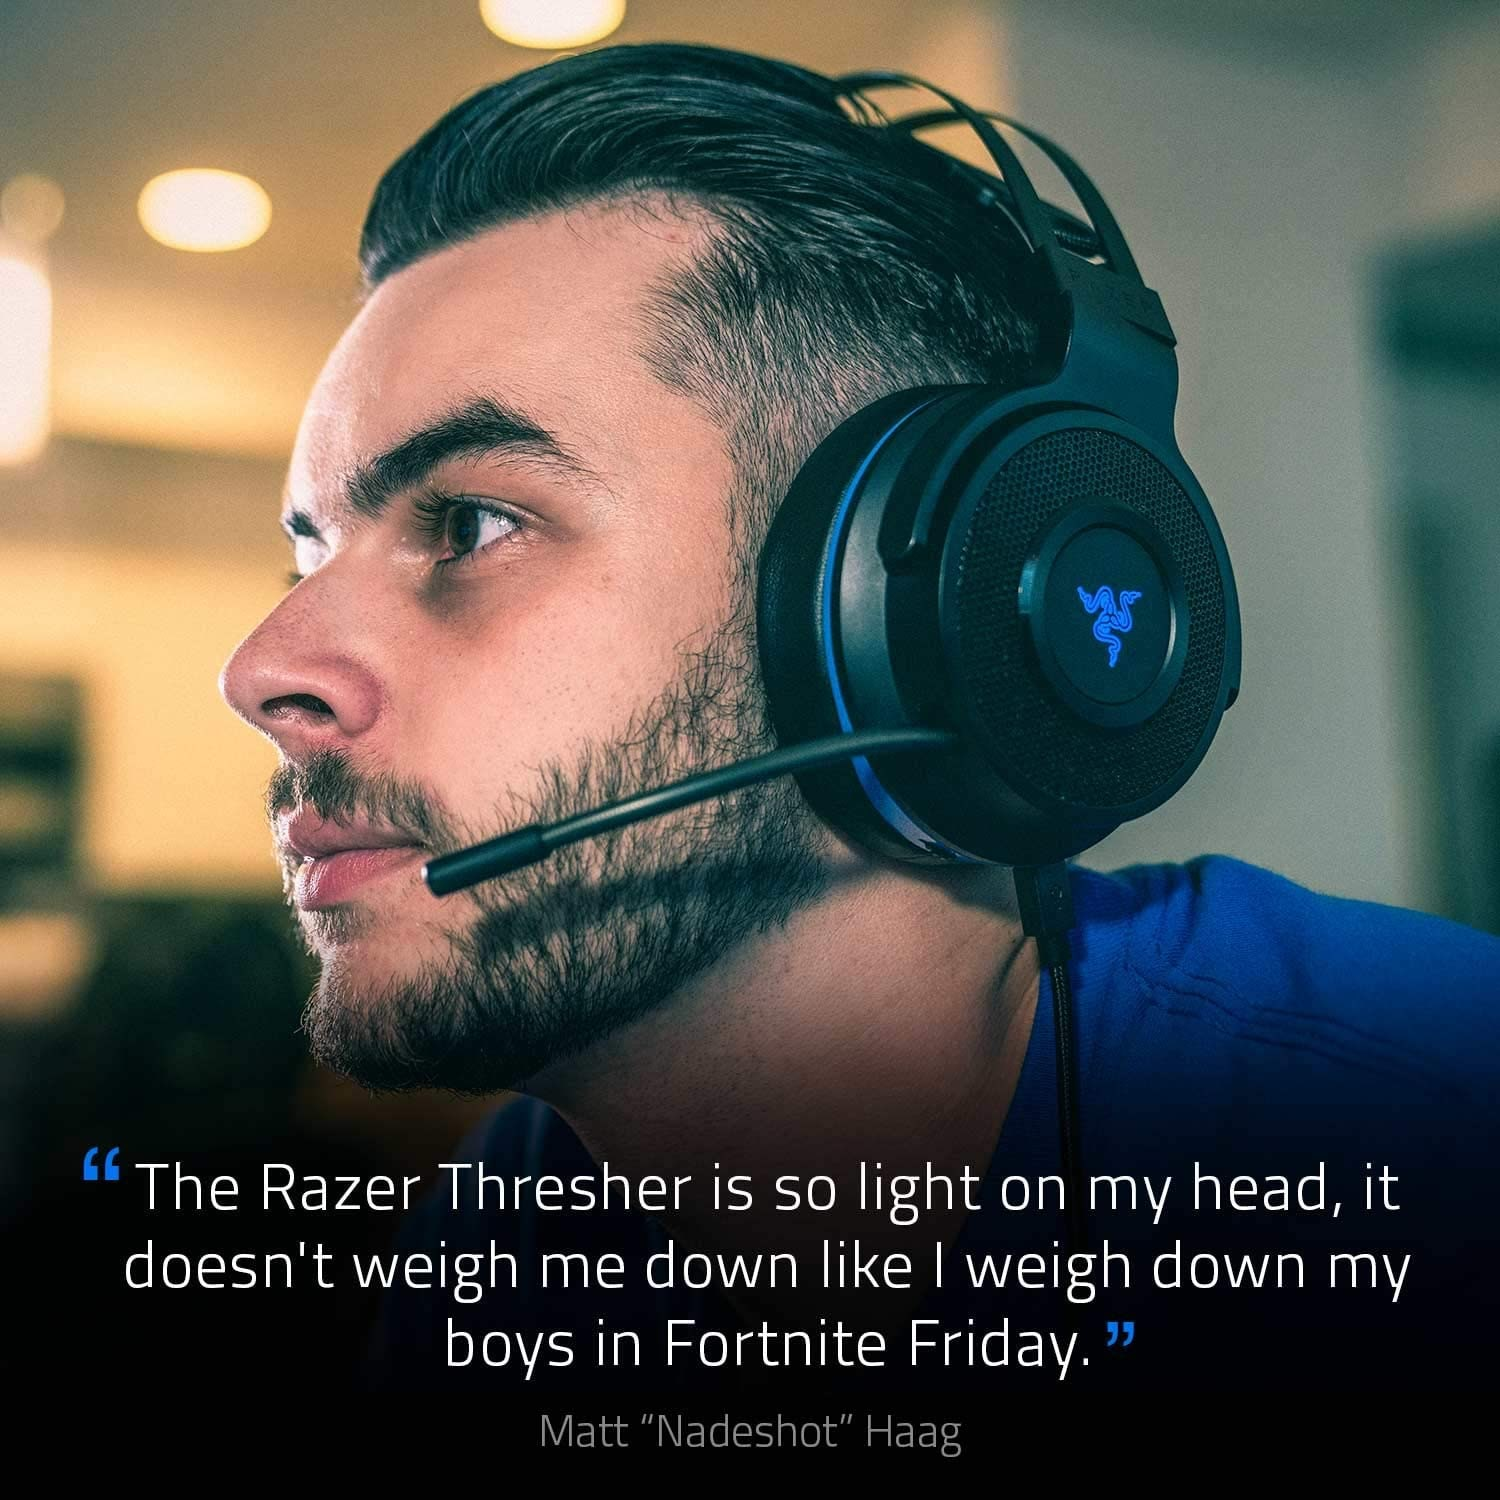 Razer Thresher 7.1 for PlayStation - Wireless Gaming Headset for PS4, PS5 and PC Wireless Headphones, Dolby 7.1 Black - 8